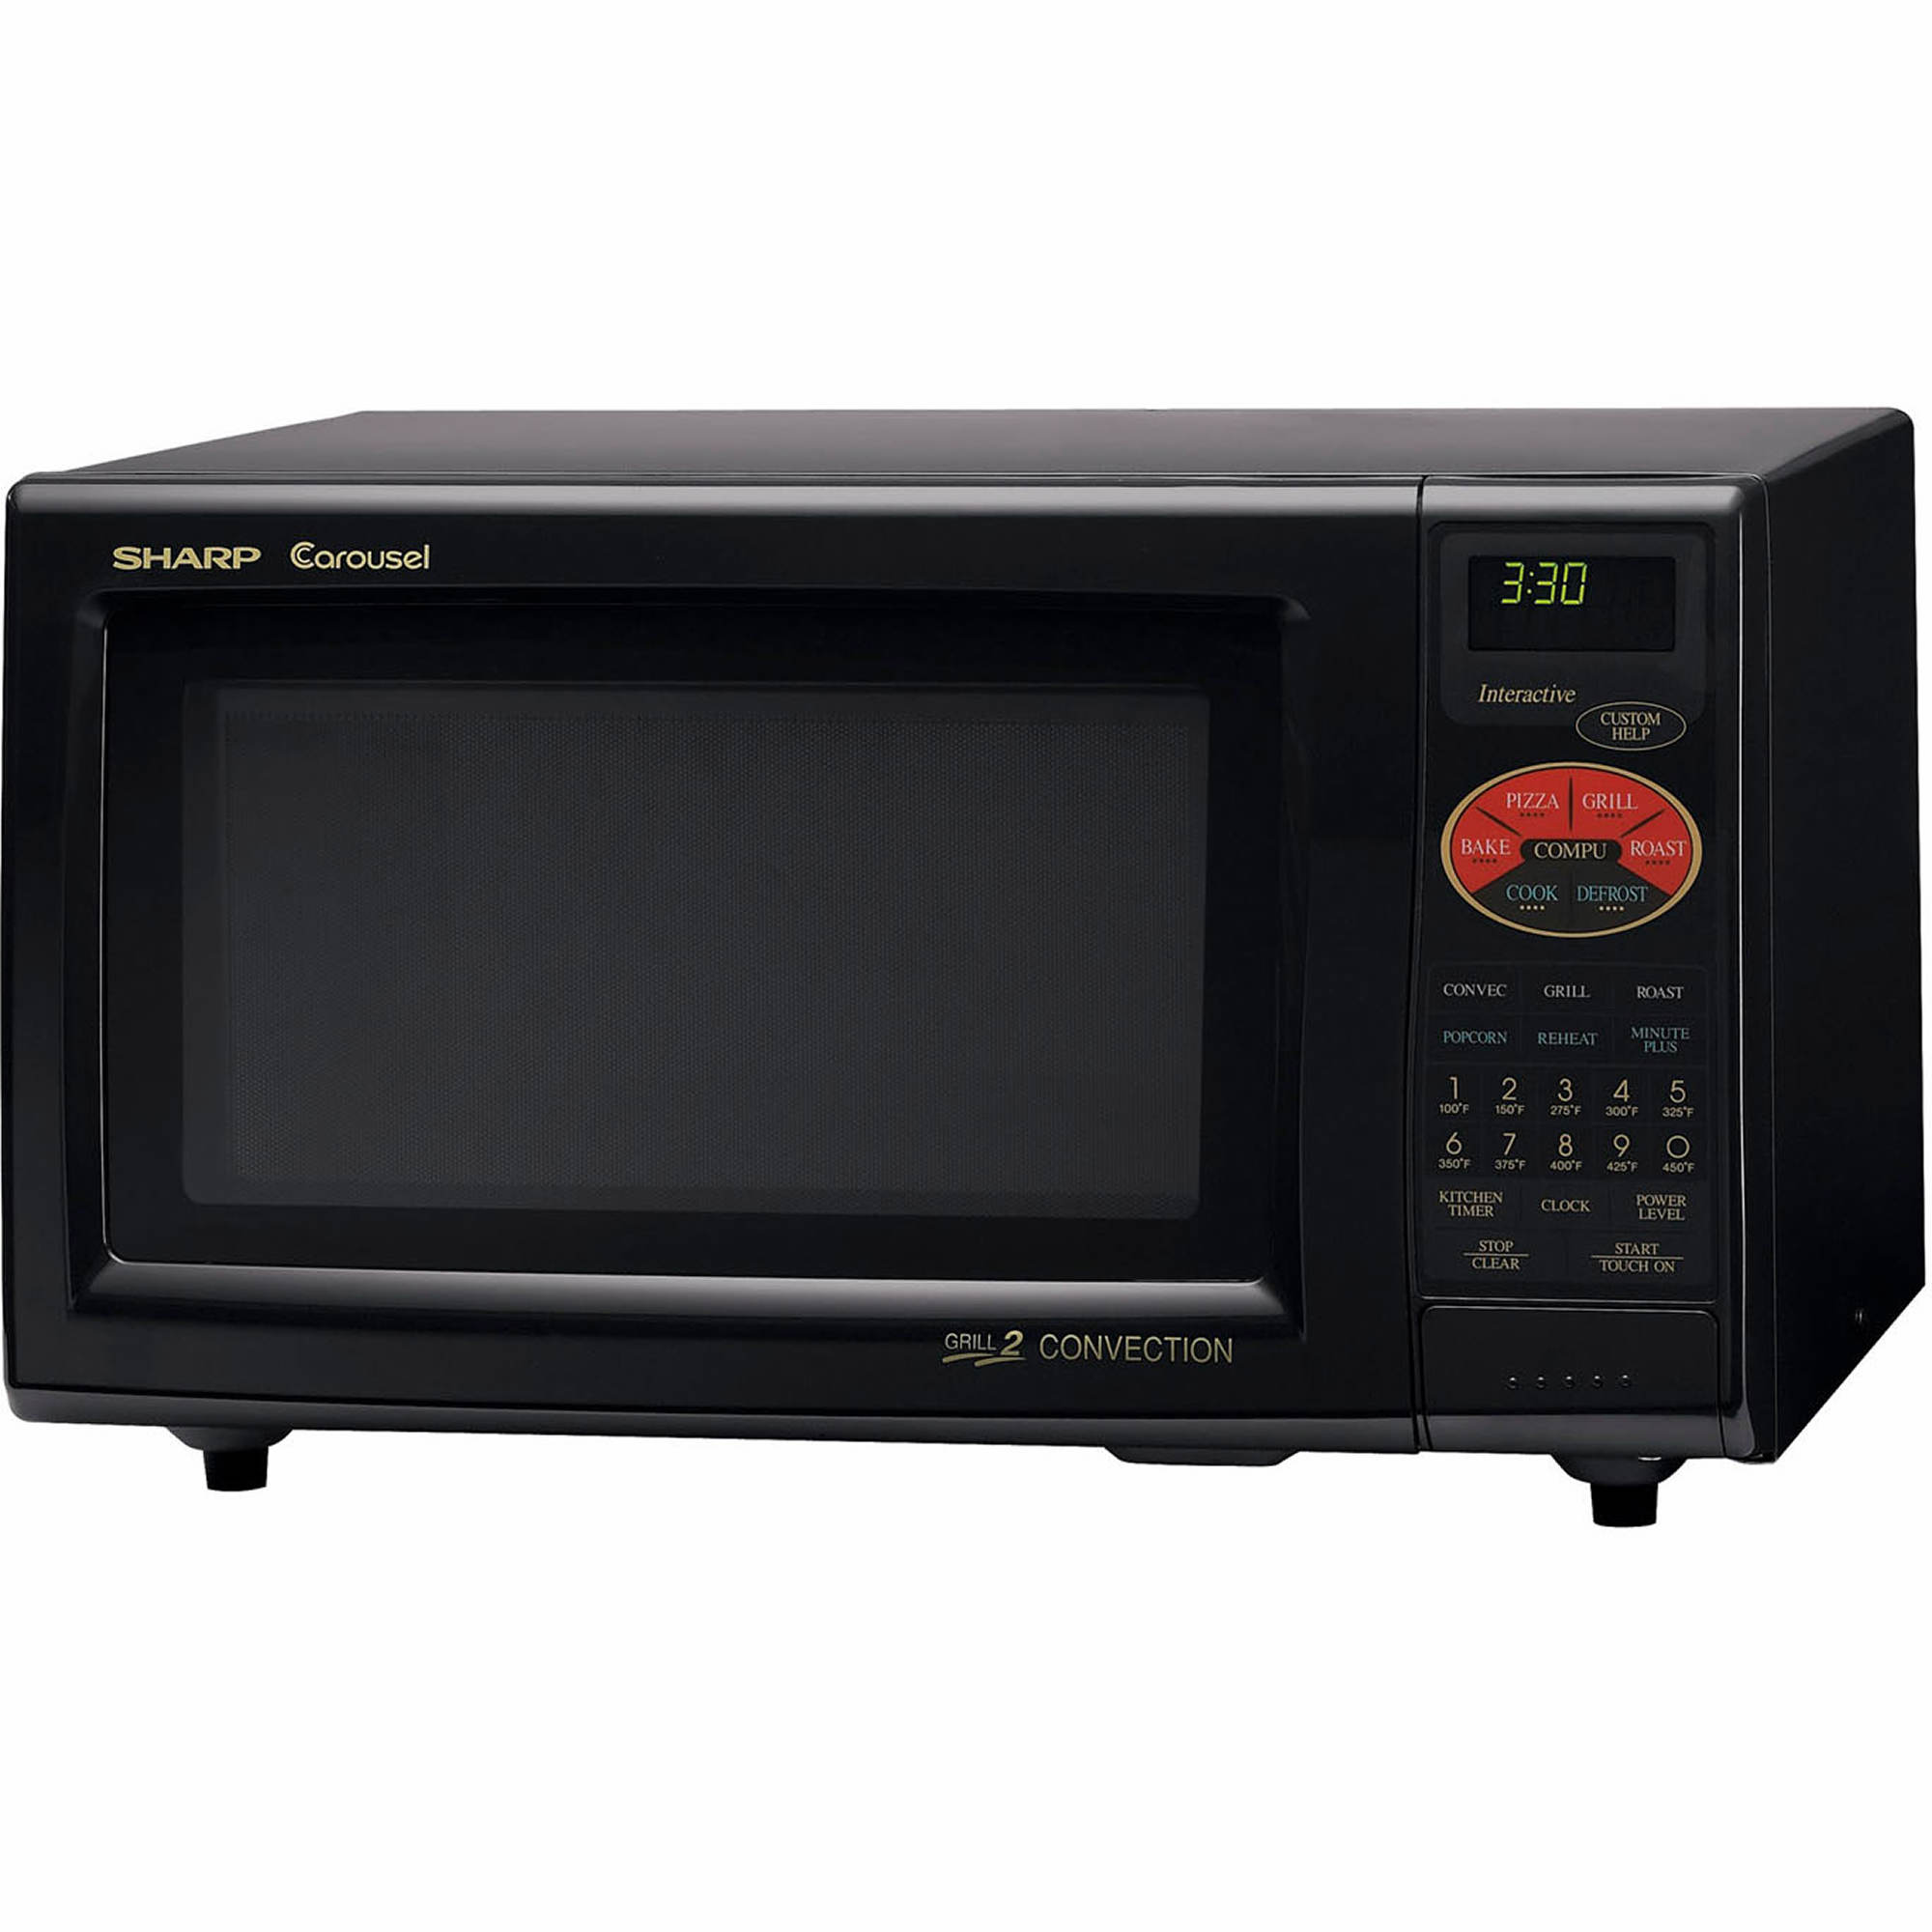 sharp r820bk 0 9 cu ft 900w grill 2 convection microwave. Black Bedroom Furniture Sets. Home Design Ideas